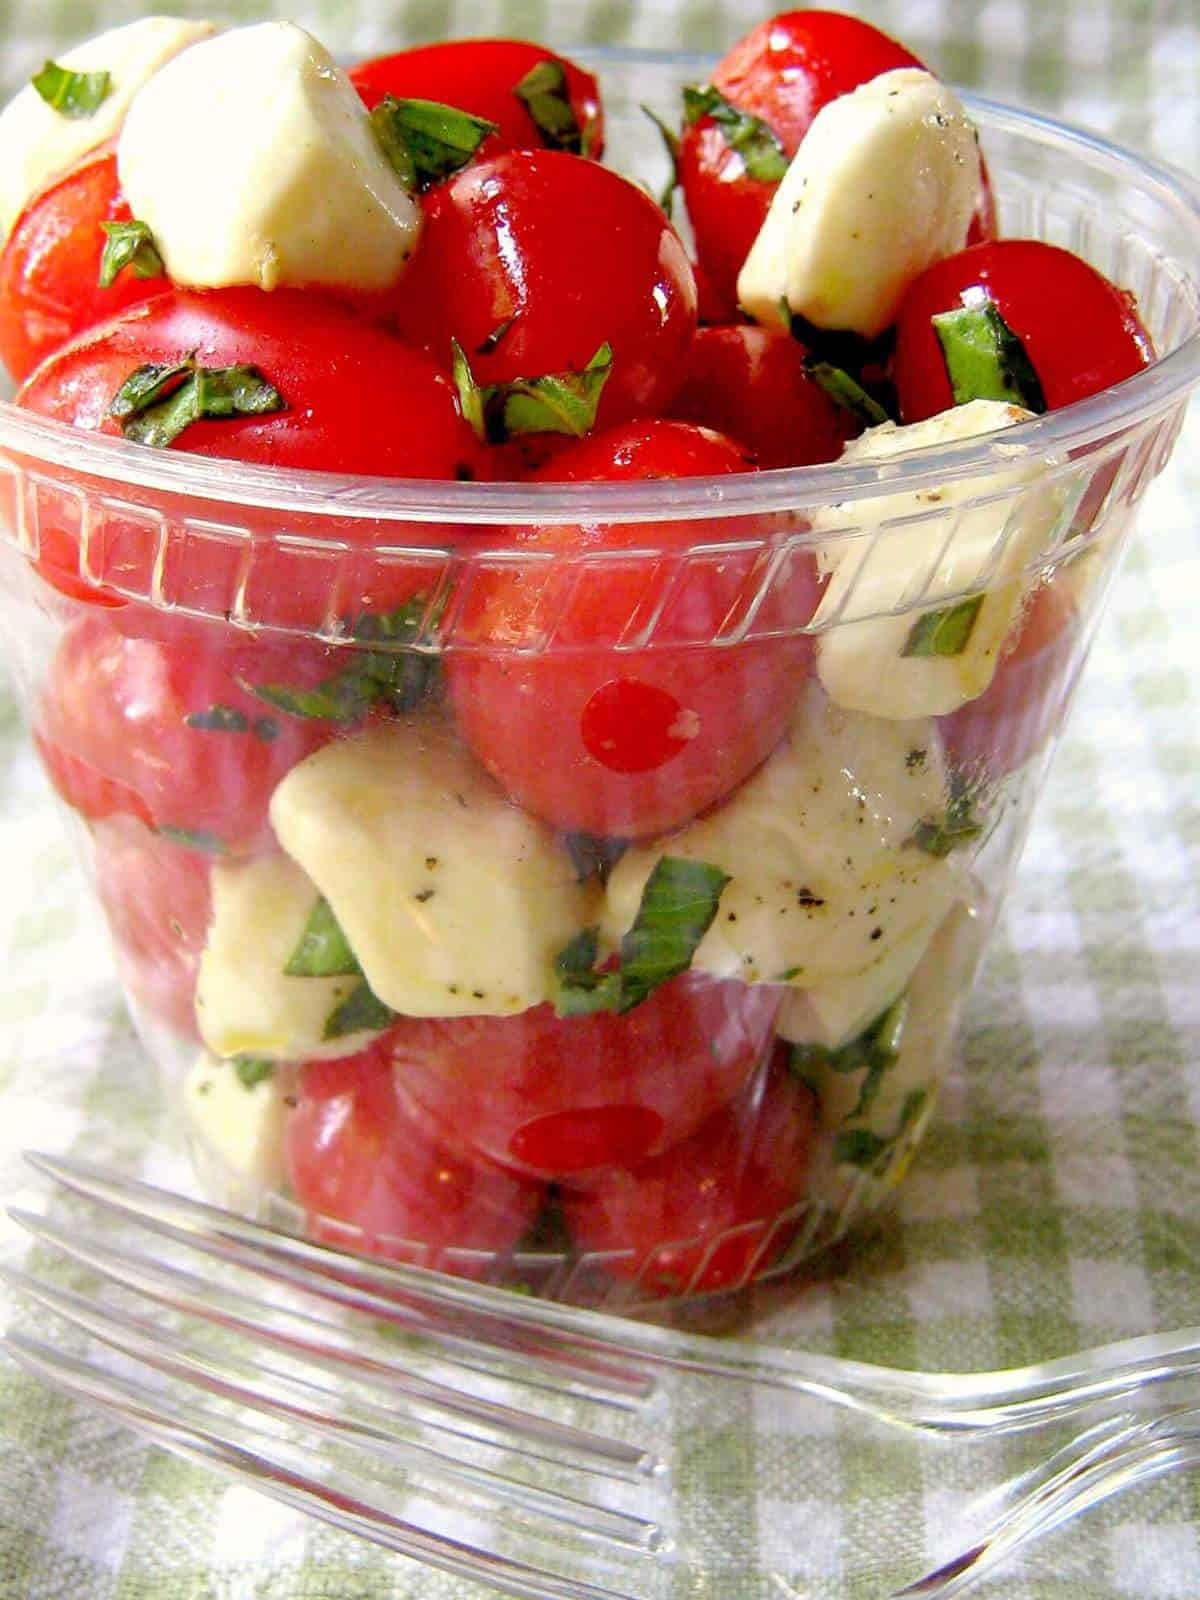 The perfect make ahead picnic salad recipe. The delicious flavors of caprese salad come together in a snap. Keep a bowl in the refrigerator for a quick snack.